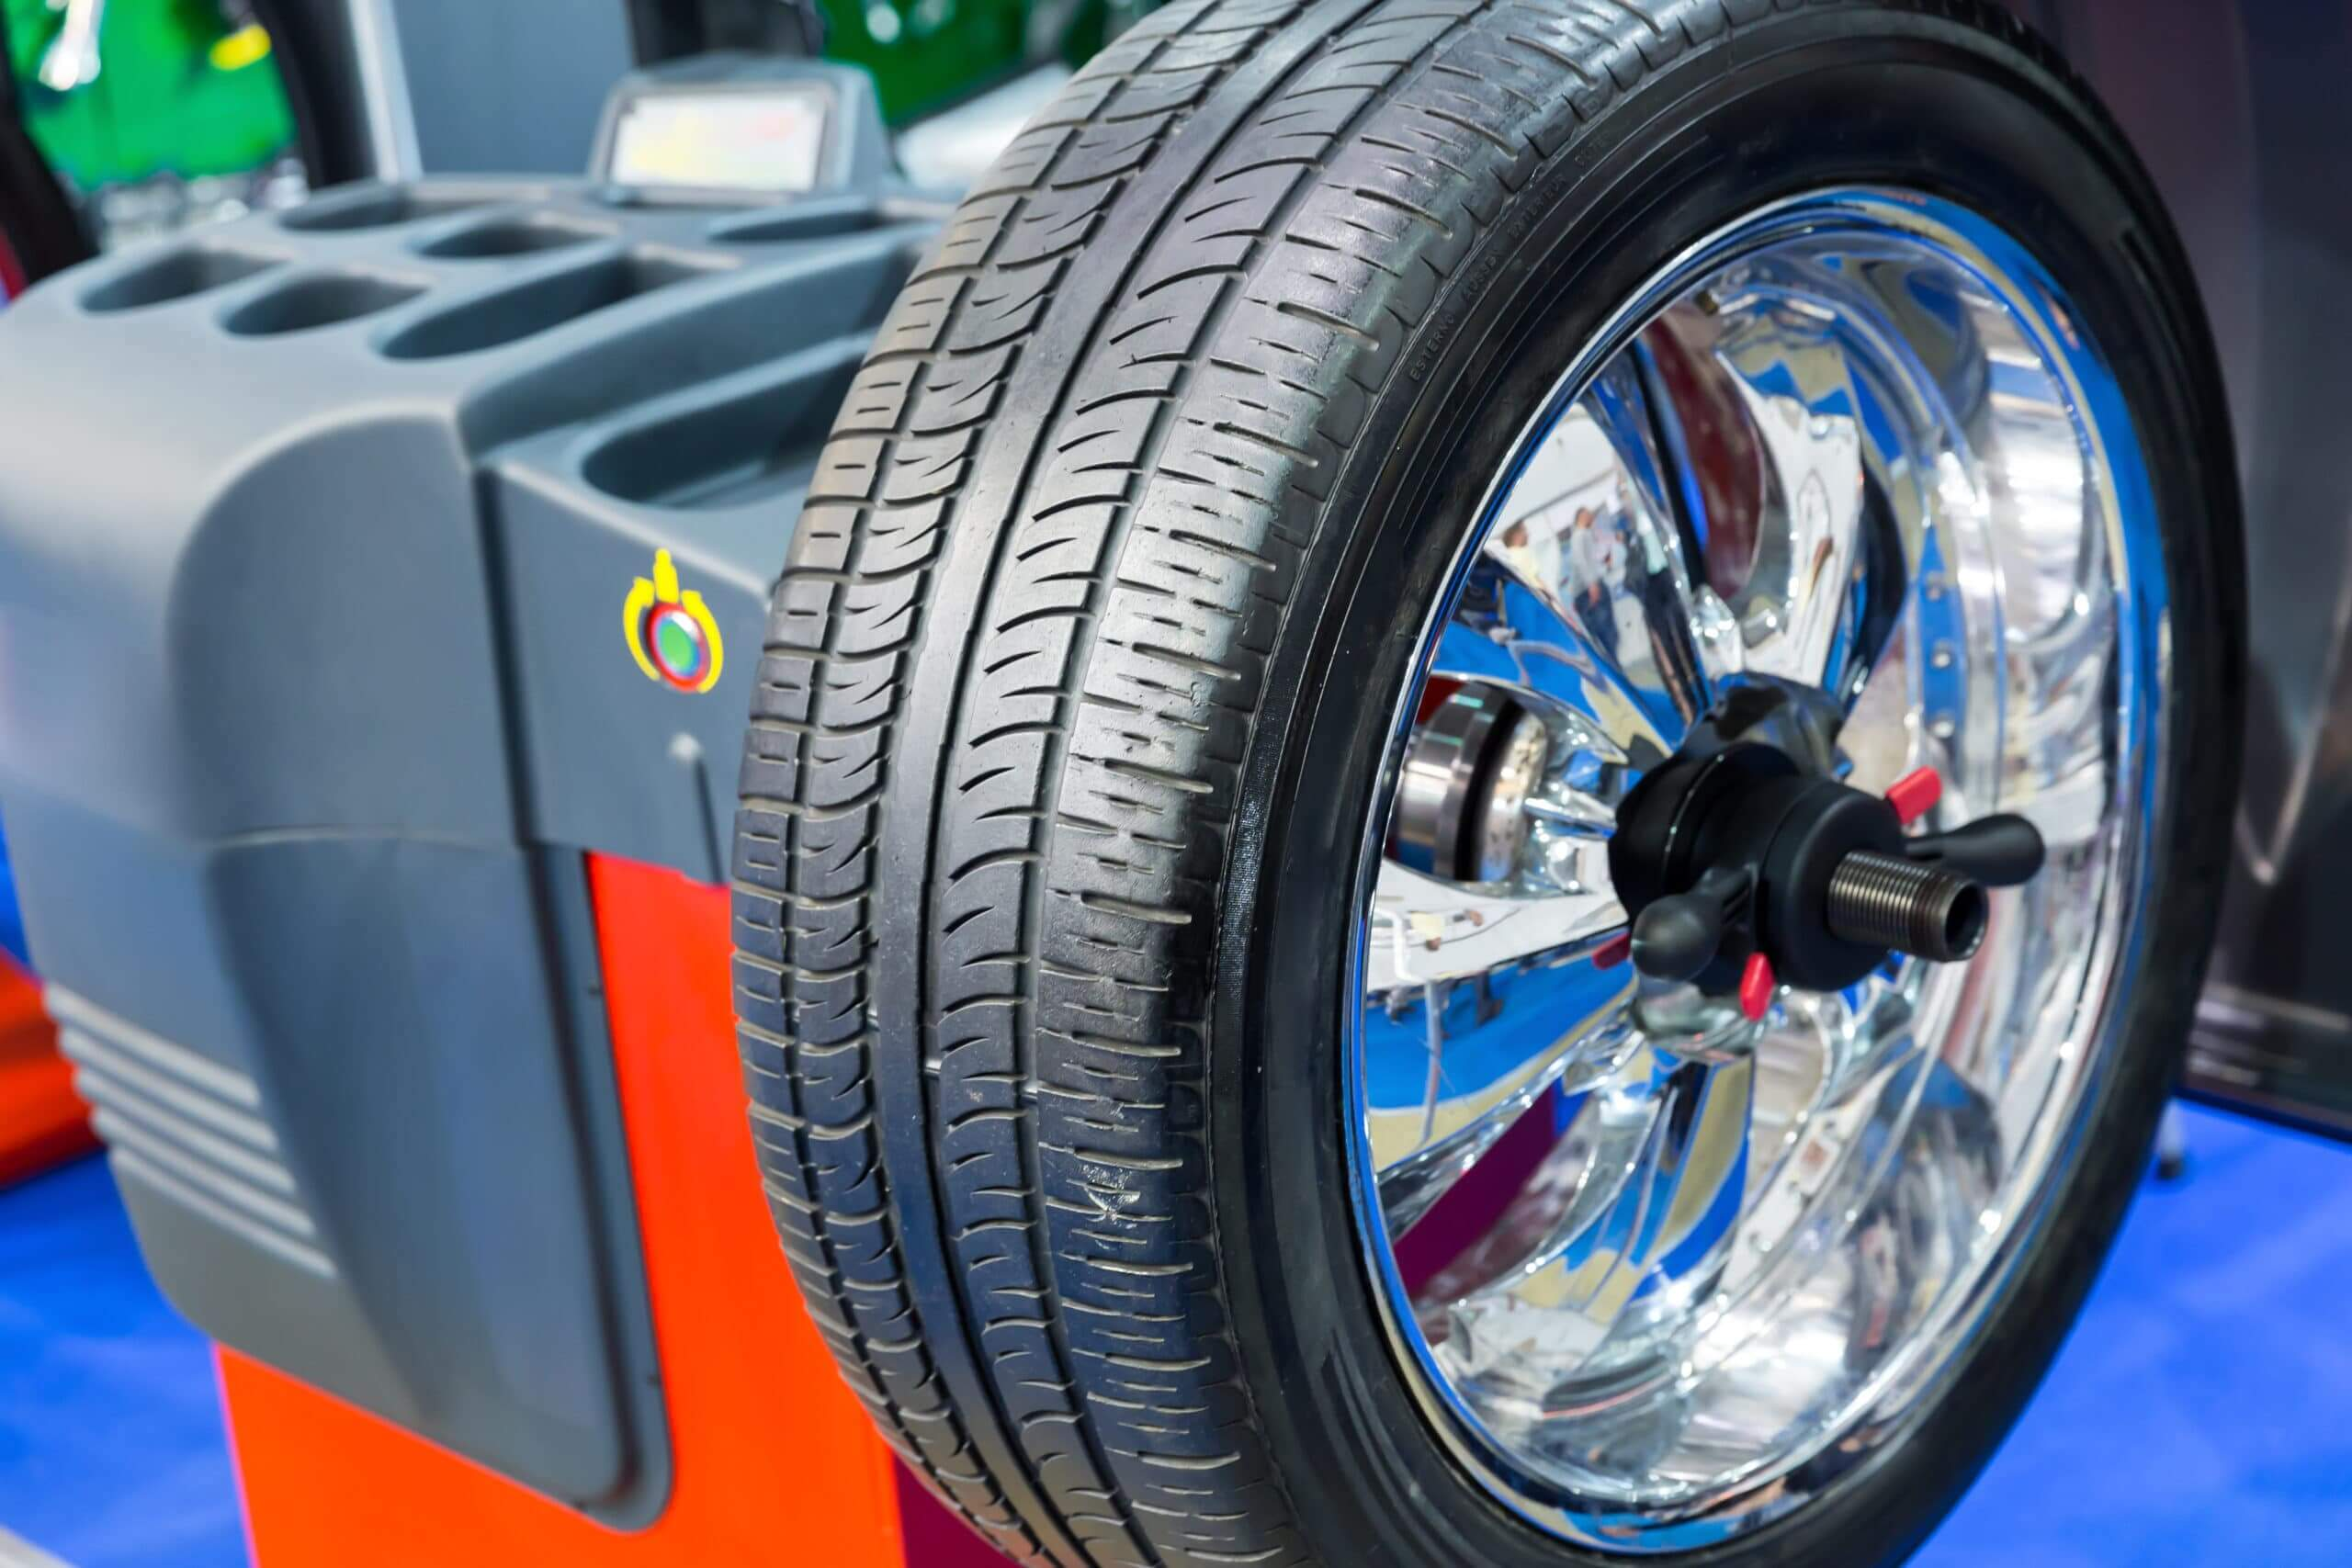 Auto Repair and Maintenance - Tire and Wheel Services